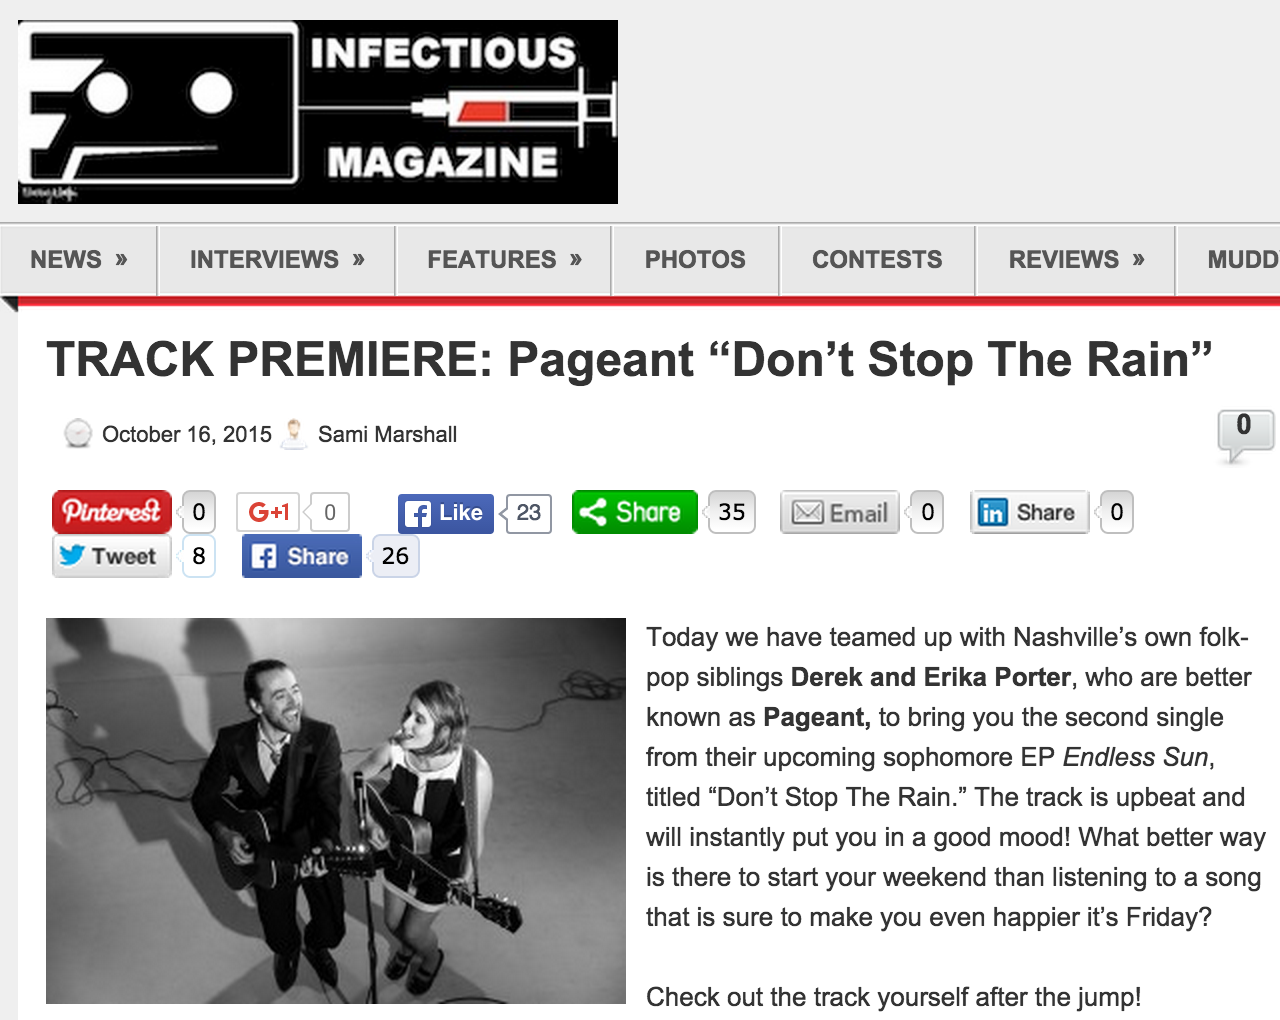 "TRACK PREMIERE: Pageant ""Don't Stop The Rain"" Oct 16, 2015"